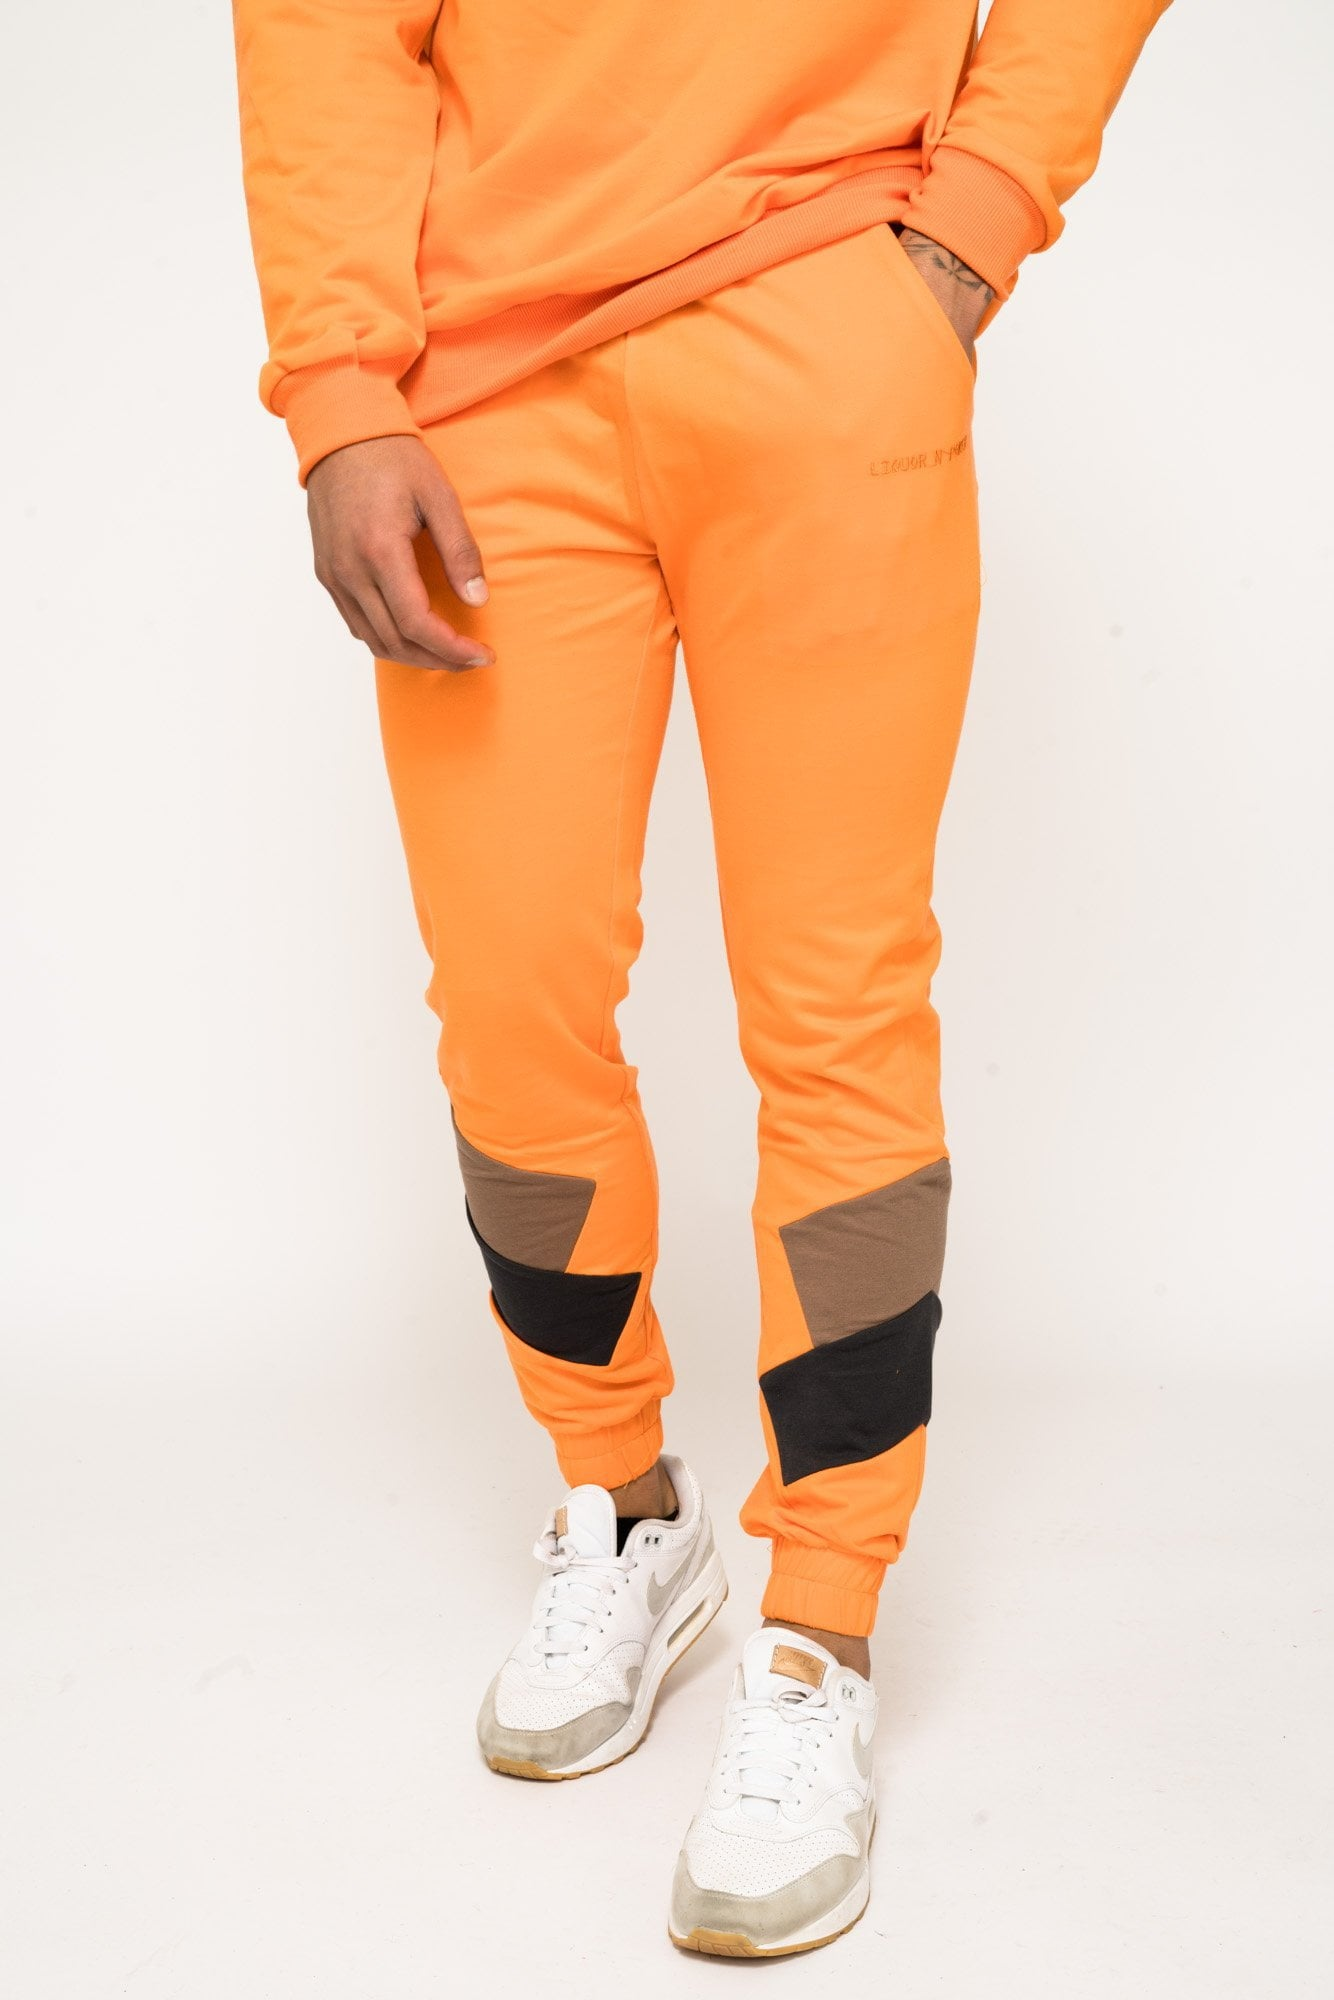 BAKERFIELD BLOCK WORK JOGGER IN SLIM FIT NEON ORANGE - Liquor N Poker  Liquor N Poker